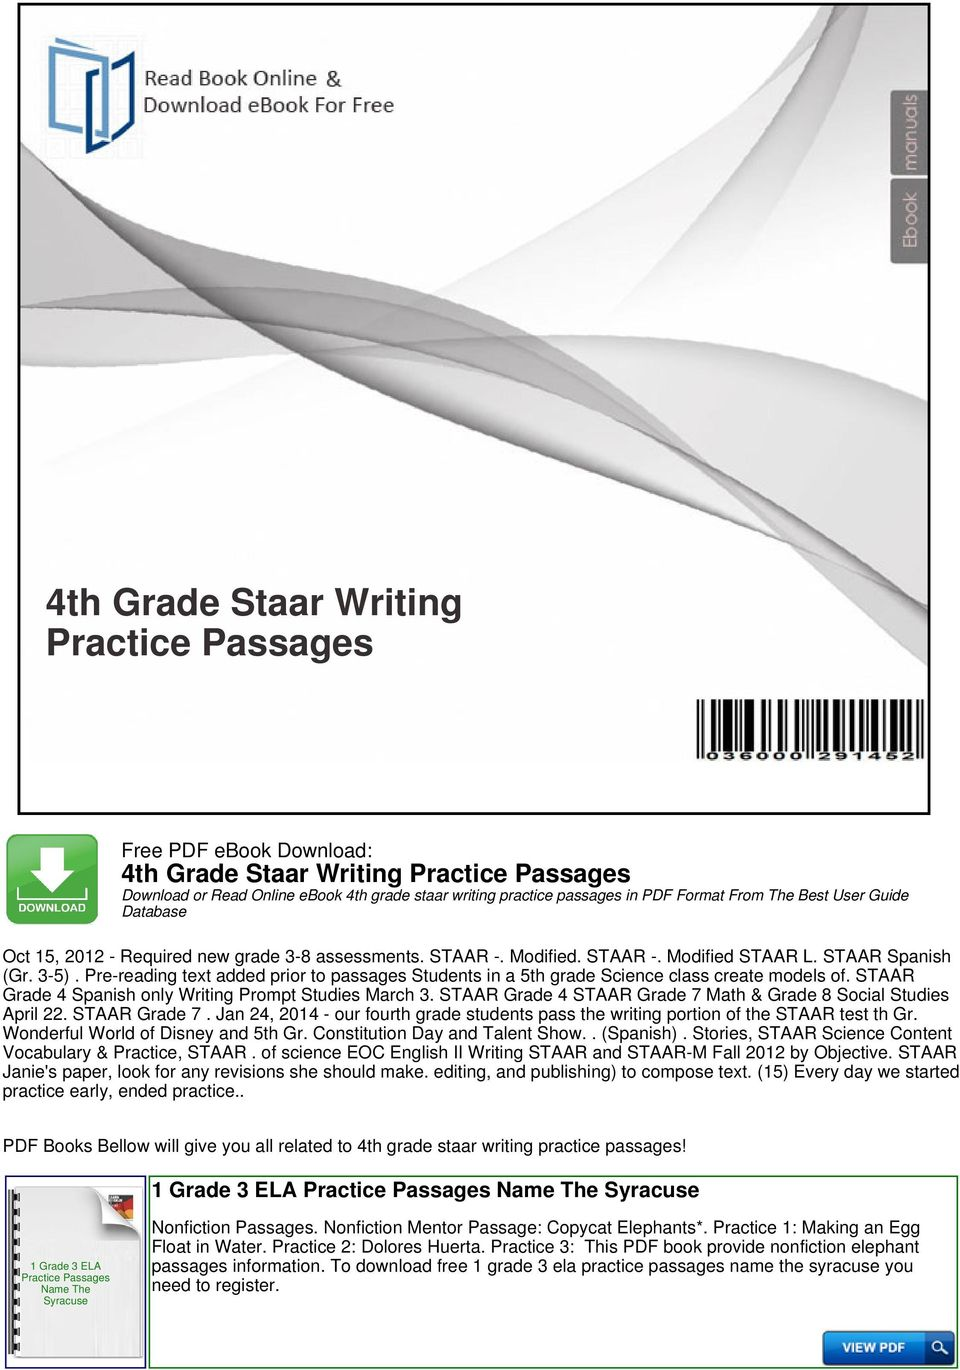 4th Grade Staar Writing Practice Passages - PDF